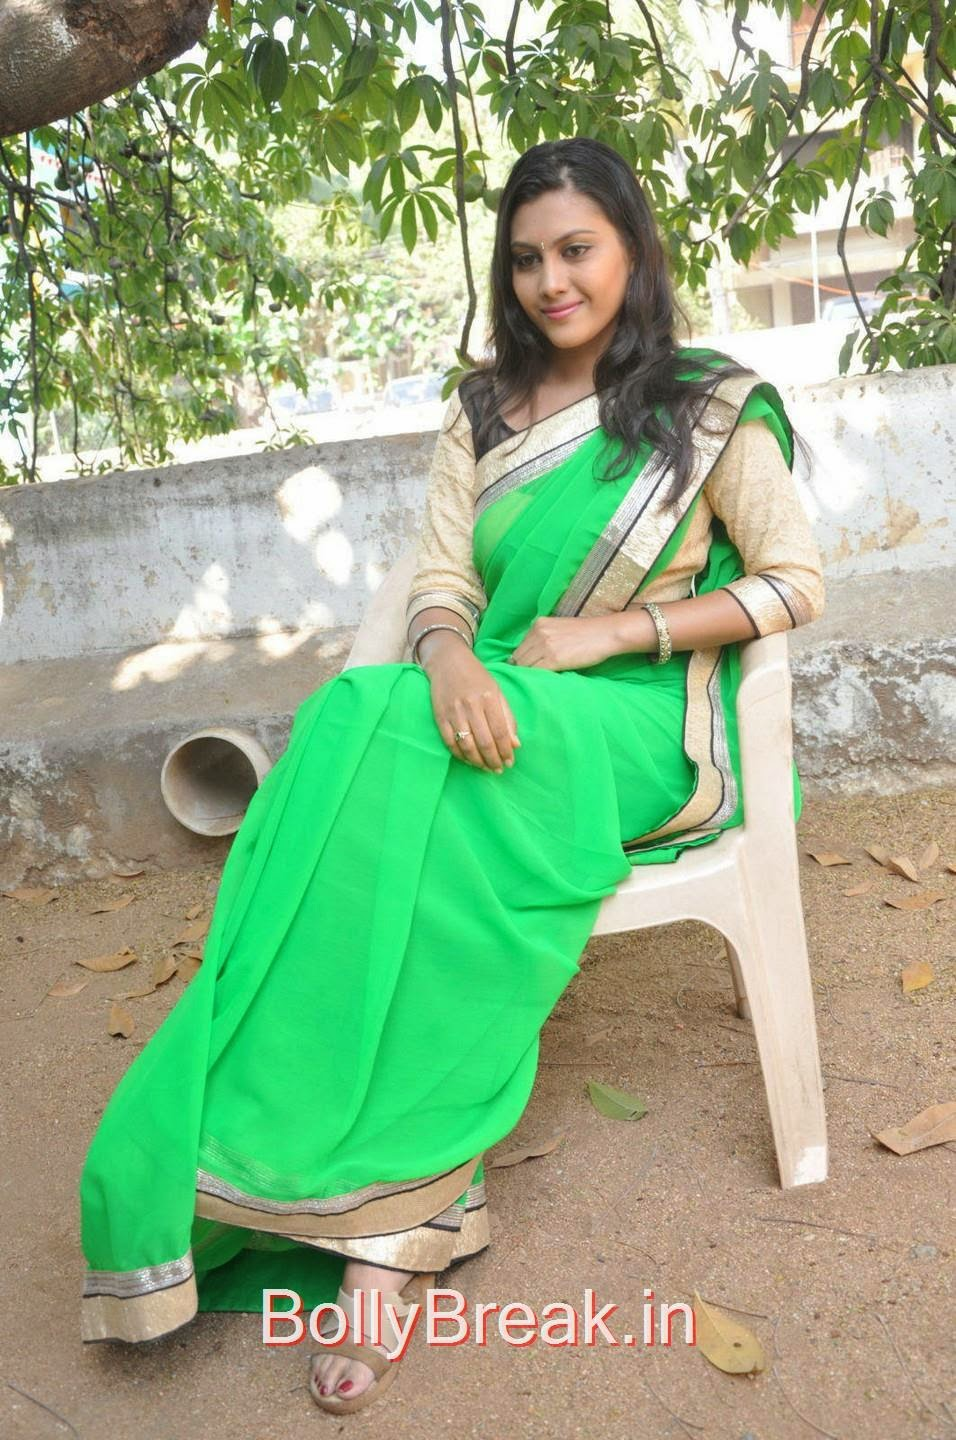 Priyanka Unseen Stills, Hot Pics Of Priyanka In Green Saree from SS Art Productions Production No 1 Movie